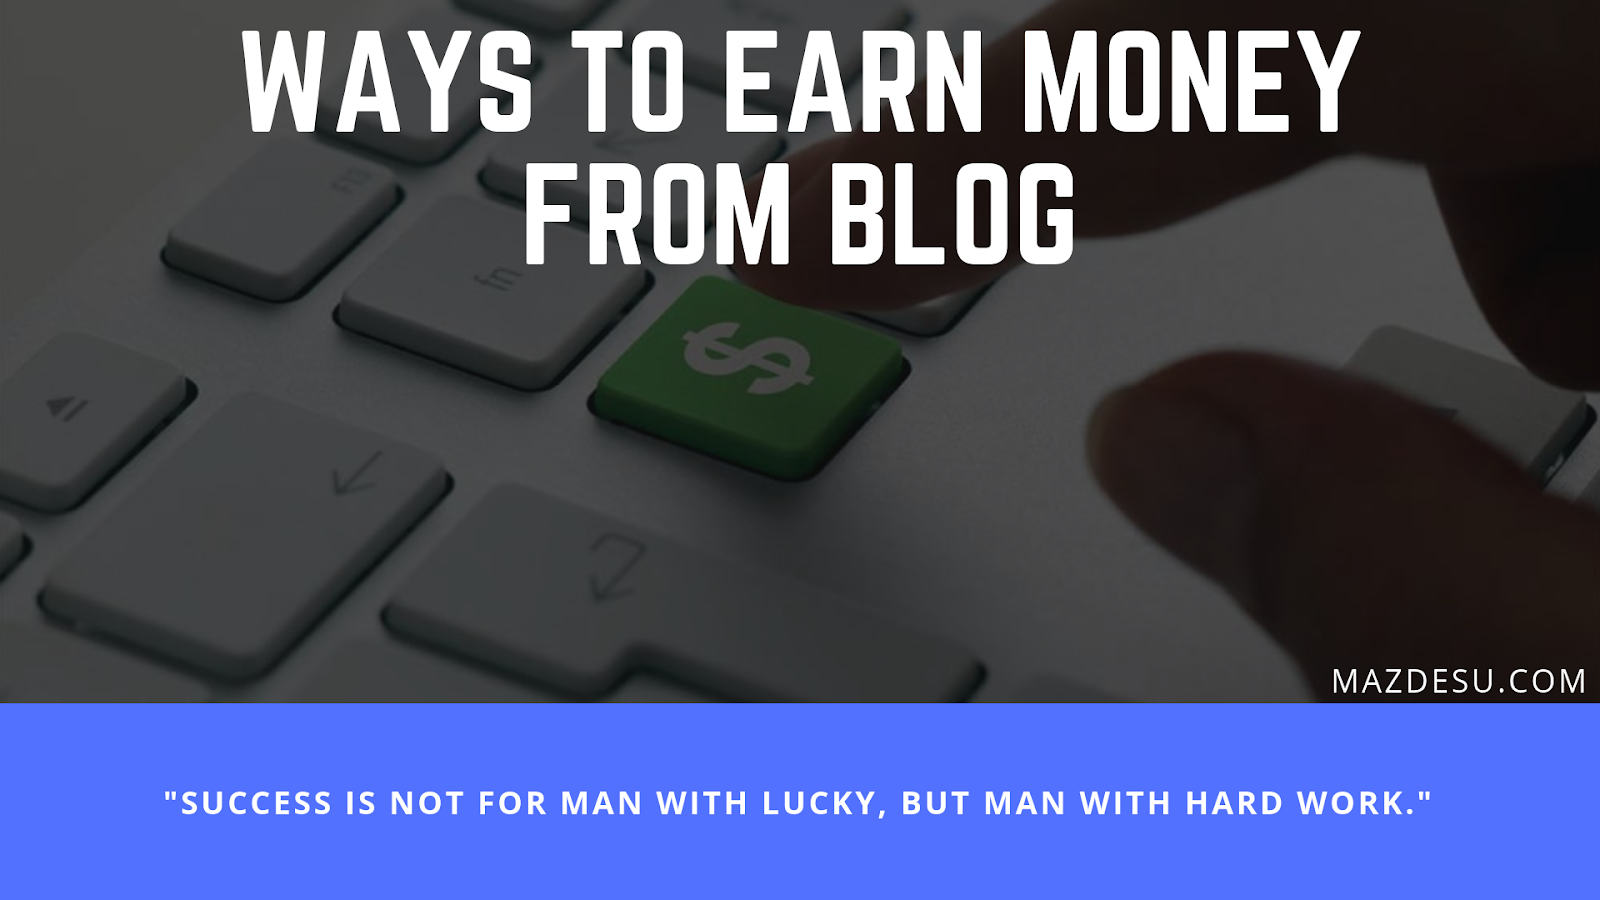 6 Ways to Earn Money Using Blog